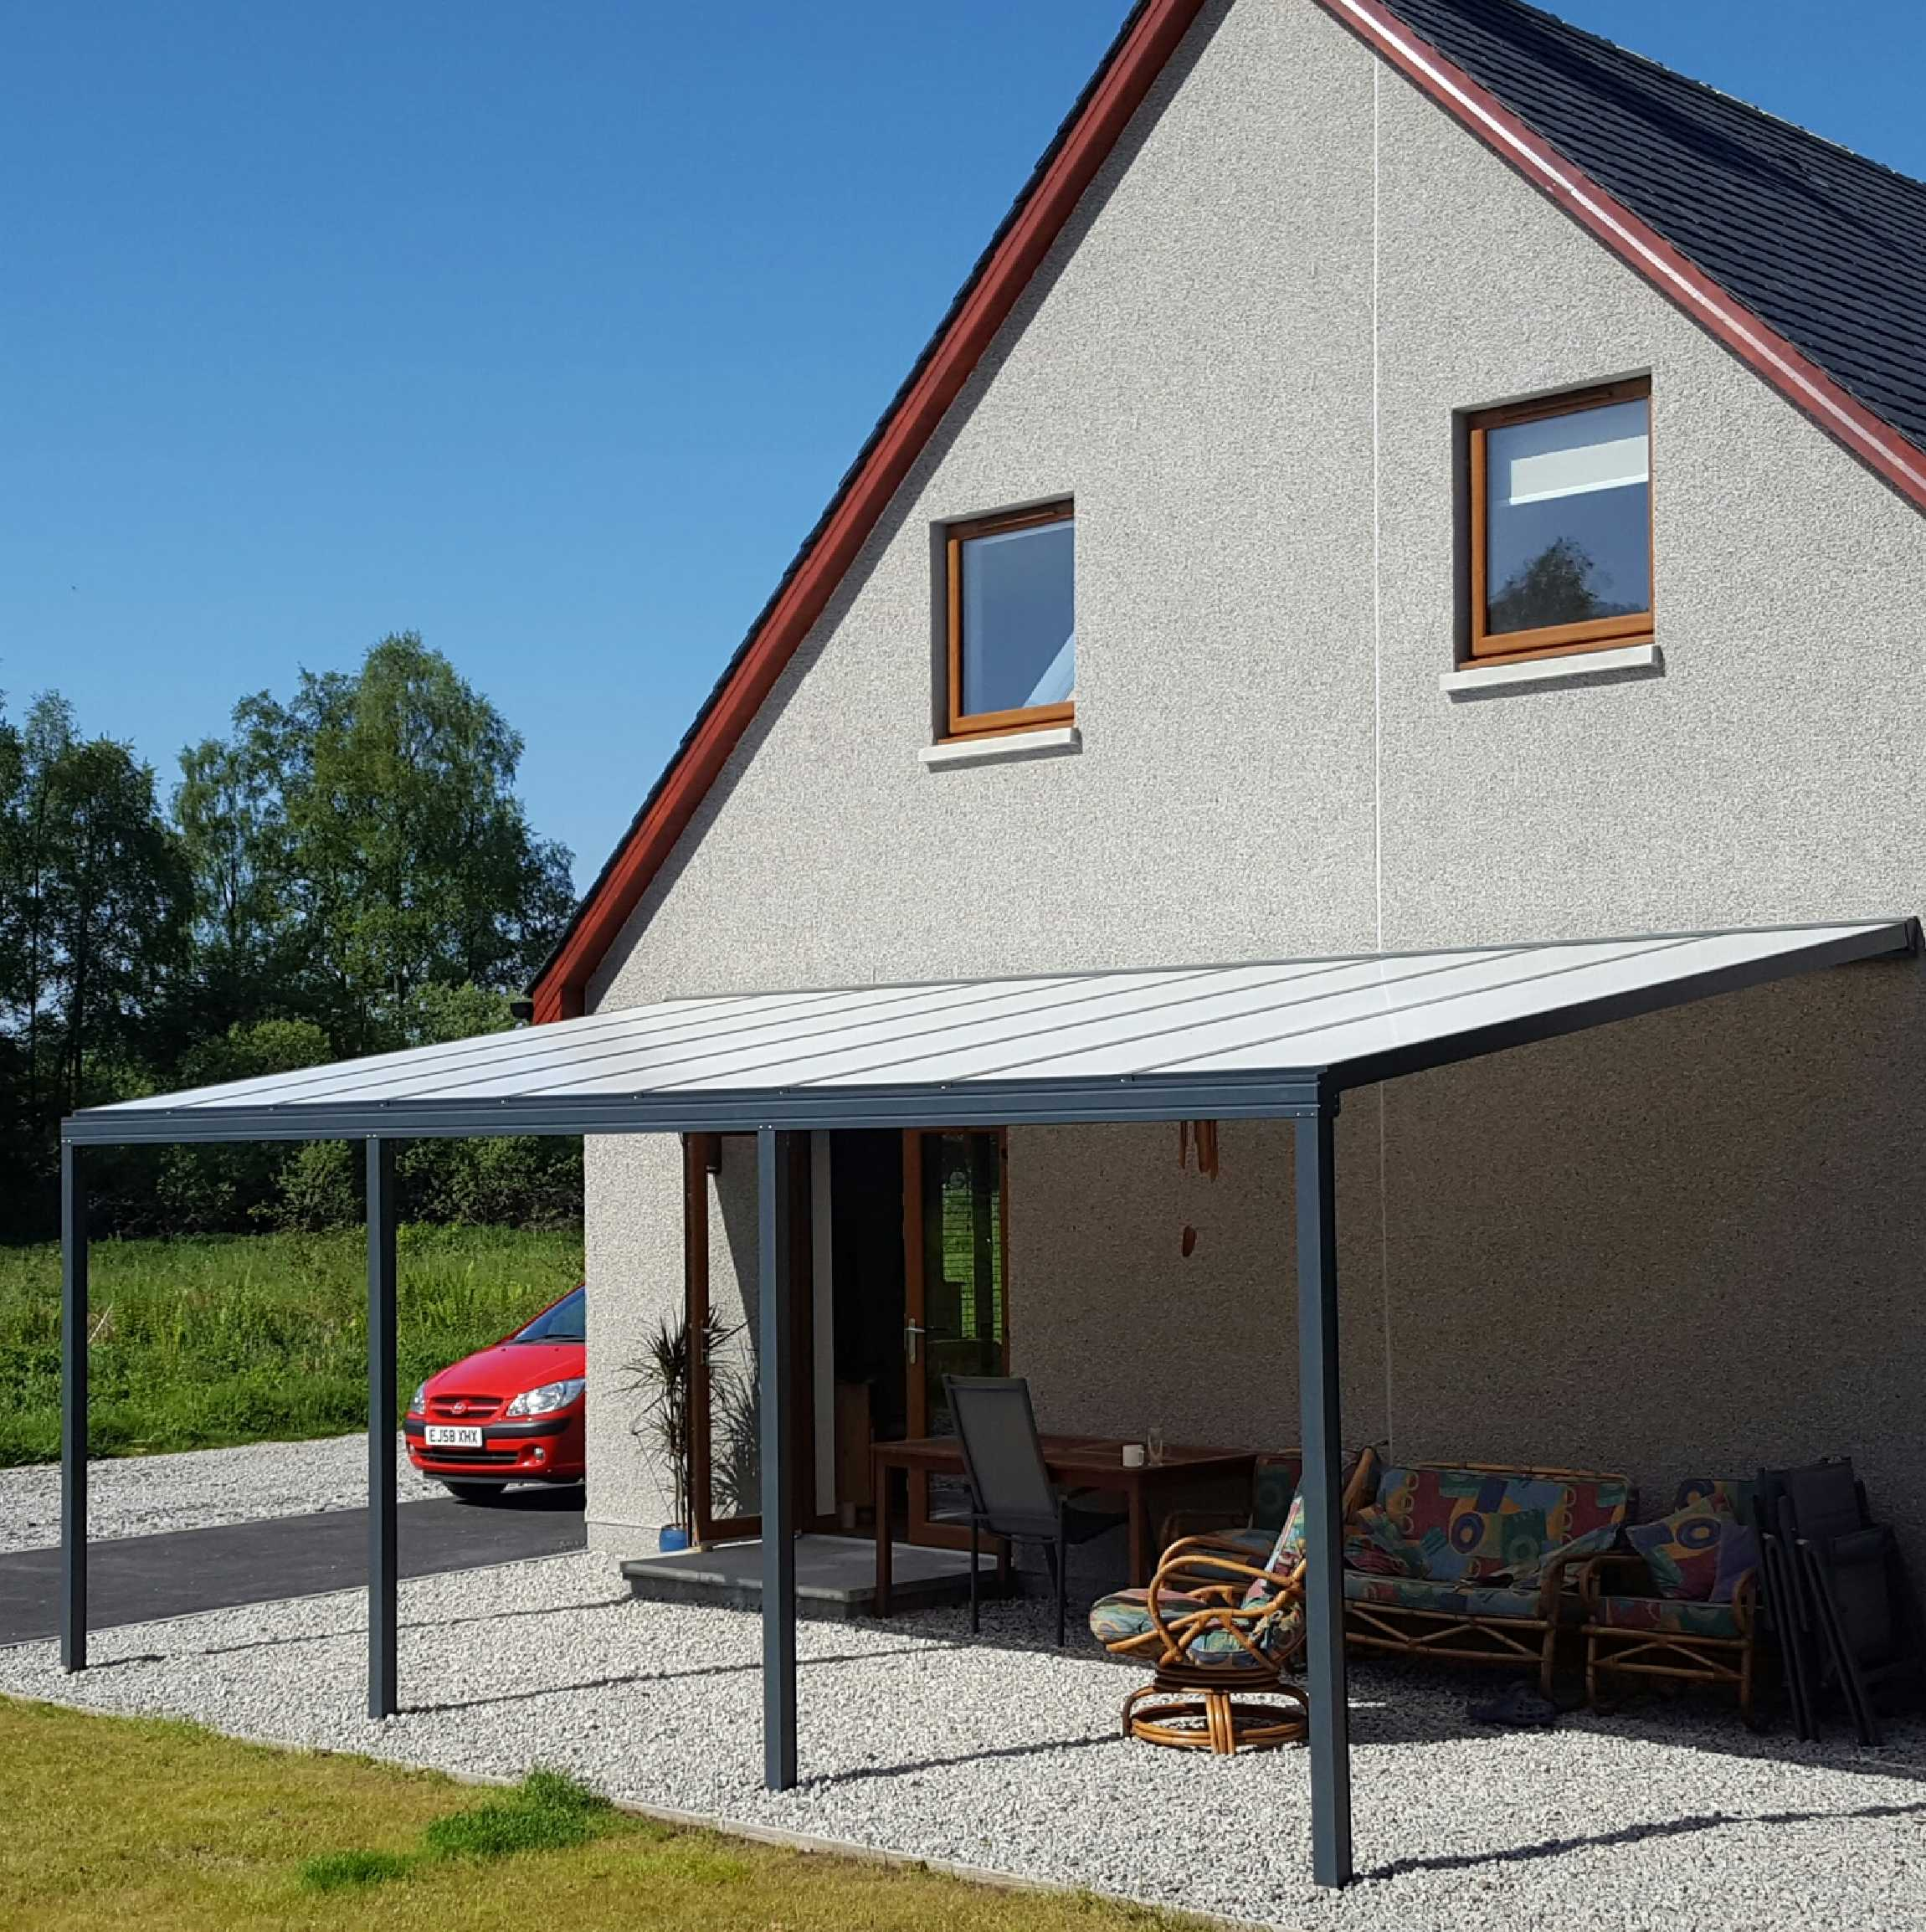 Great selection of Omega Smart Lean-To Canopy, Anthracite Grey, 16mm Polycarbonate Glazing - 10.6m (W) x 1.5m (P), (5) Supporting Posts